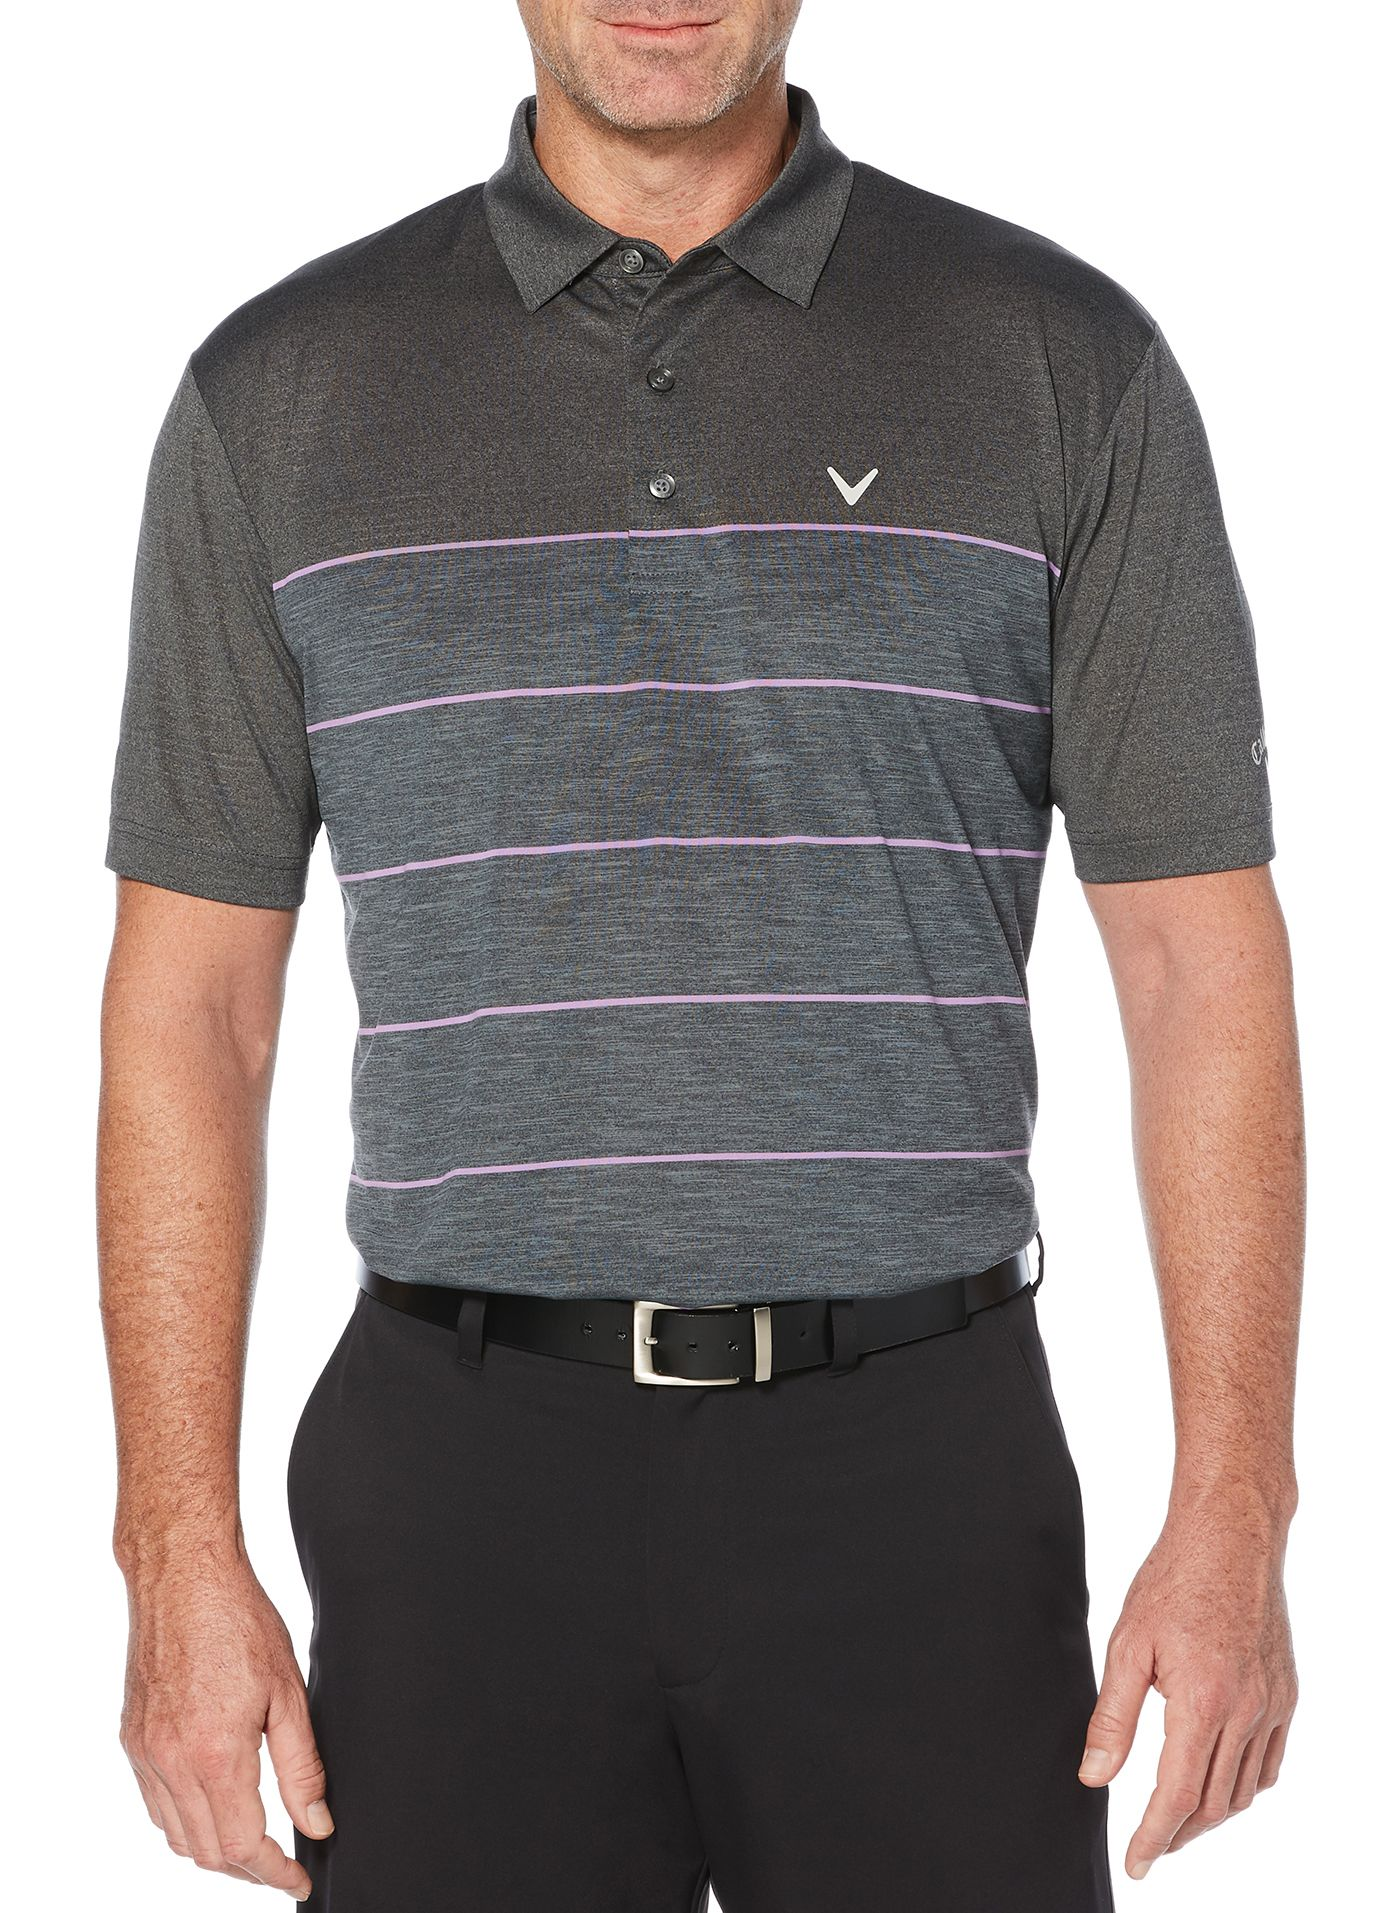 Callaway Men's Heather Stripe Golf Polo – Big & Tall